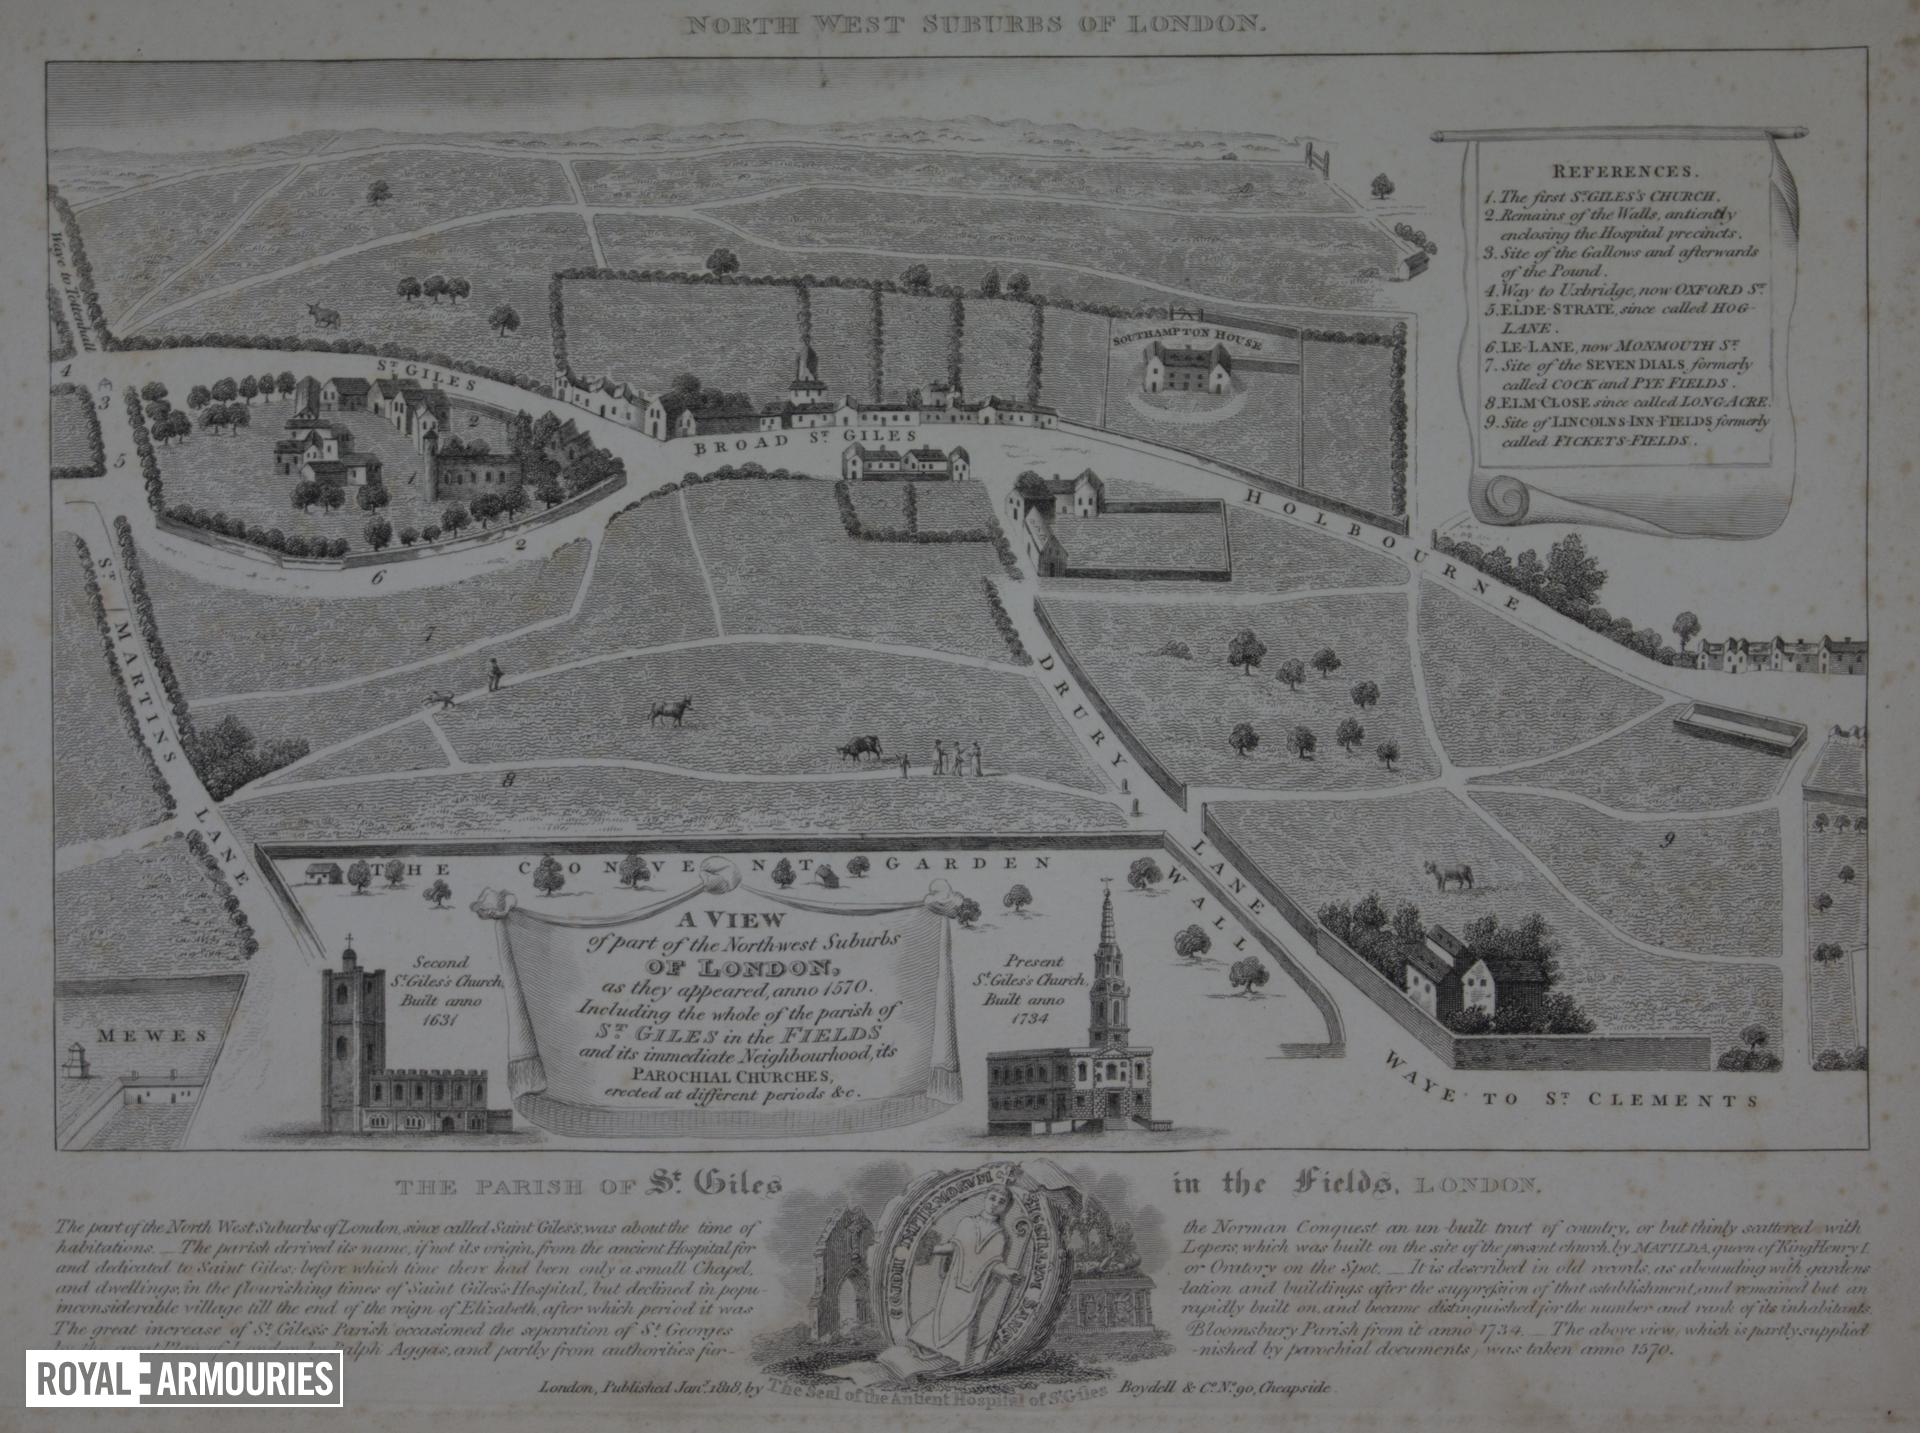 Print A View of the North West Suburbs of London, dated 1818